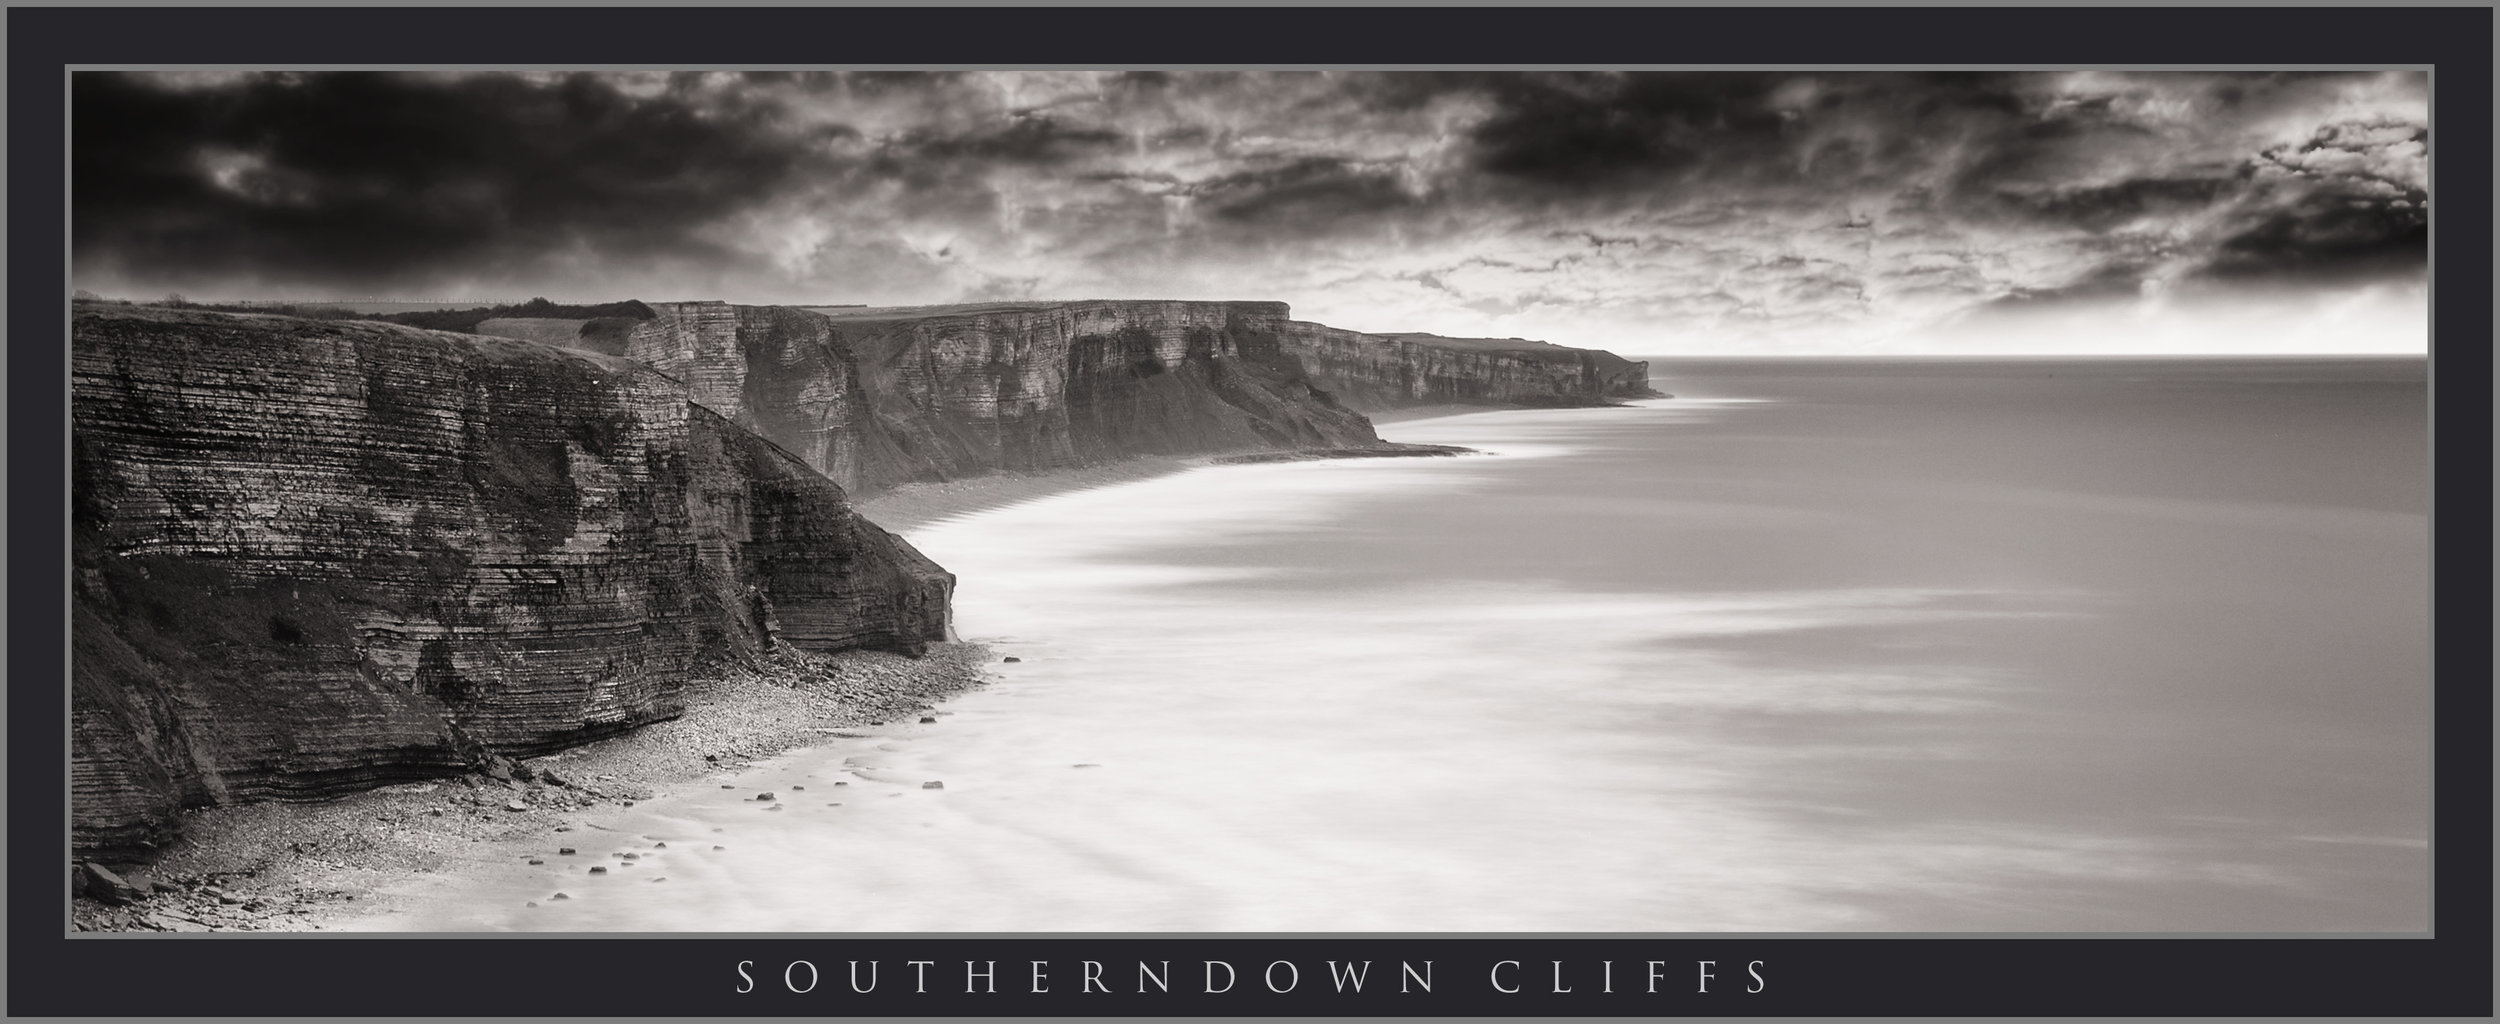 SOUTHERNDOWN CLIFFS PANORAMIC BLACK AND WHITE;; OGMORE; SOUTH WALES LANDSCAPE PHOTOGRAPHY; BUY PHOTOS OF SOUTHERNDOWN SOUTH WALES; BUY CANVAS OF WALES LANDSCAPE IMAGES.jpg